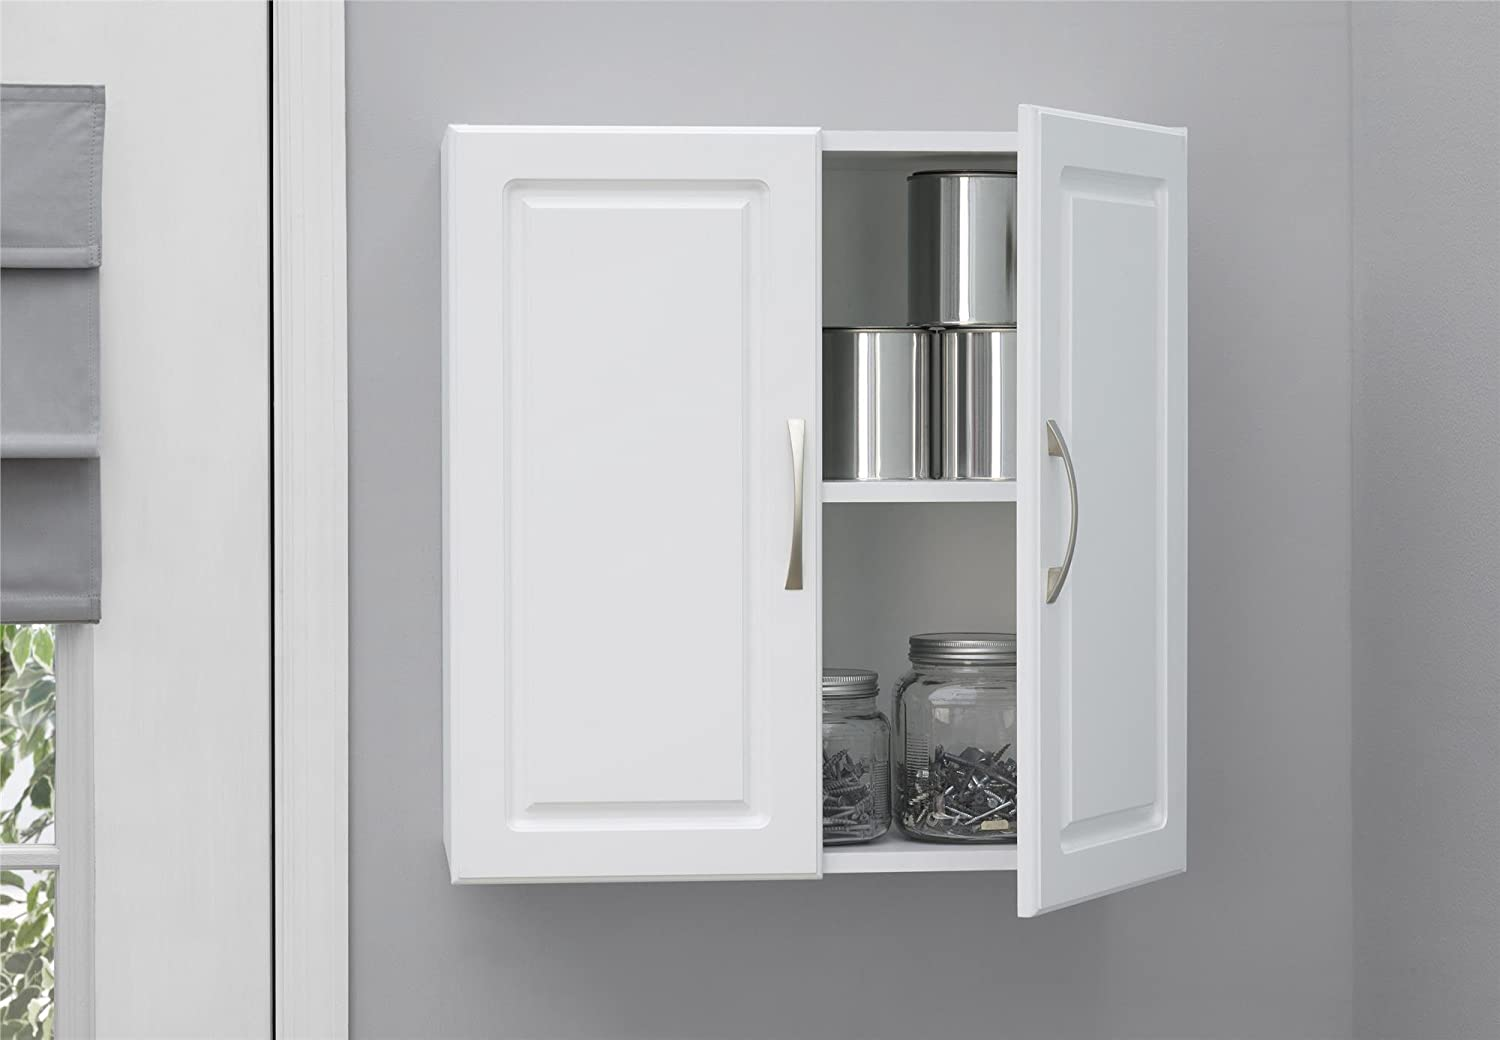 System Build Kendall 24 Wall Cabinet, White Stipple 7366401PCOM